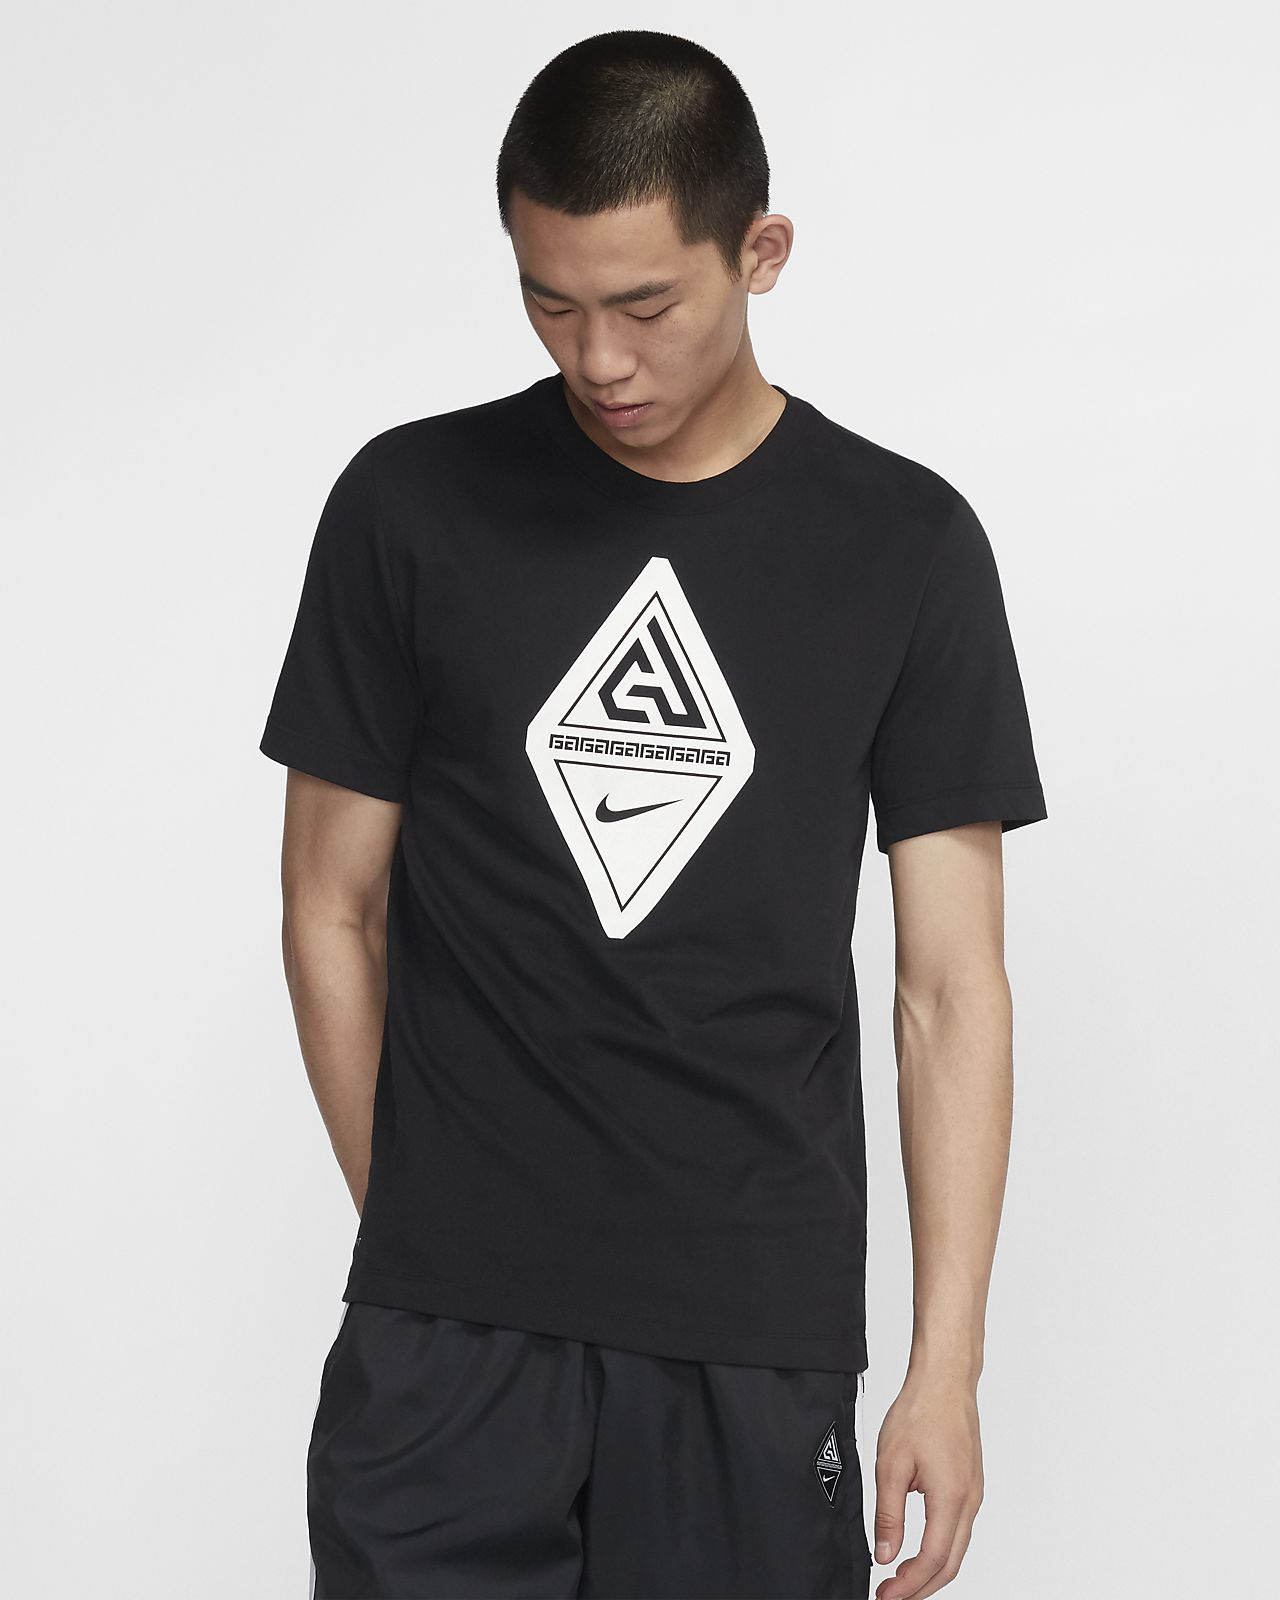 Giannis Nike Dri-FIT 男款標誌籃球 T 恤